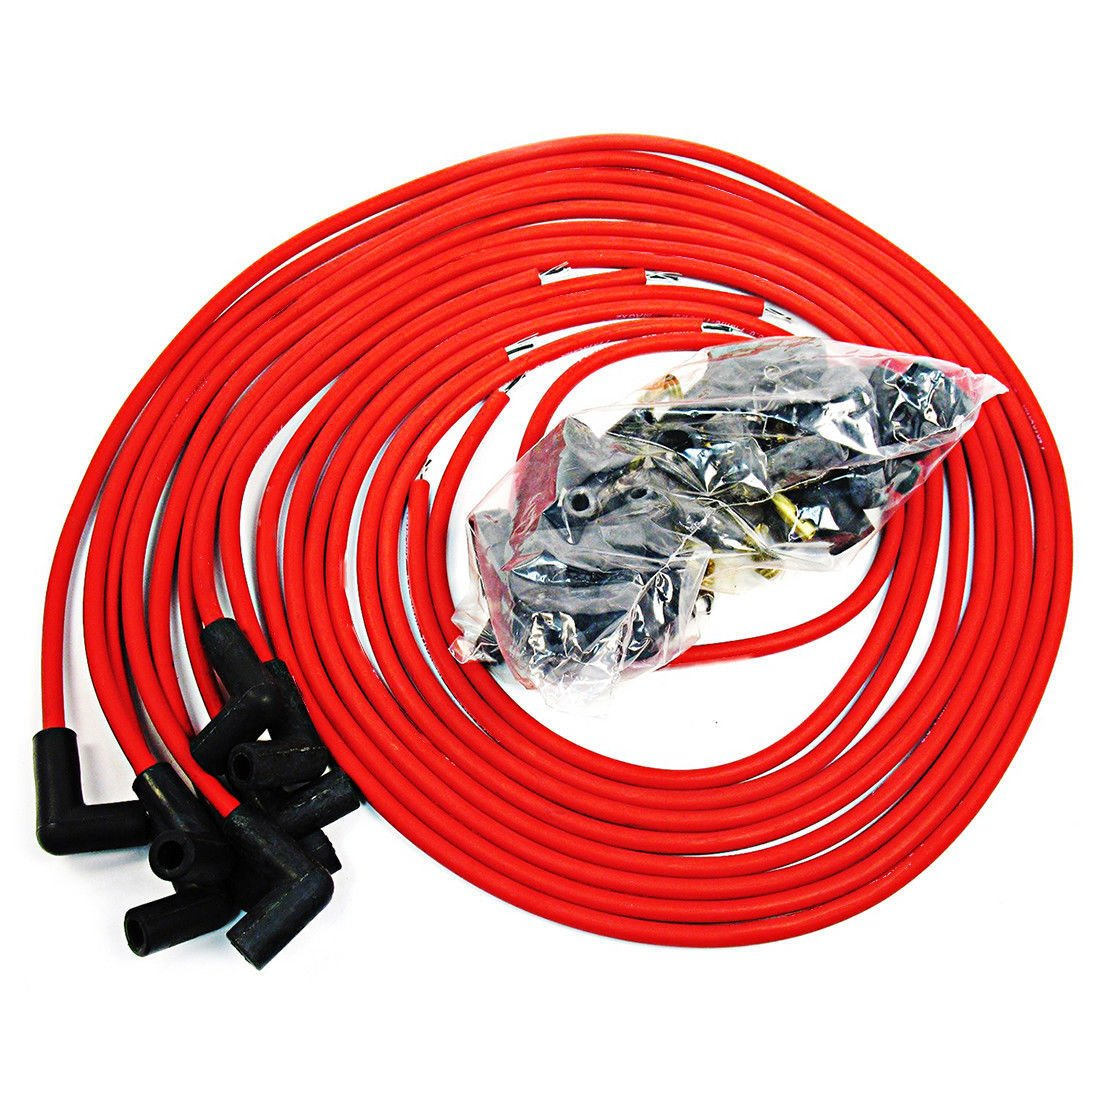 95 Mm Black 90 Degree Distributor Spark Plug Wires For 454 Bbc Gm Coil Wiring Chevy Sbc Sbf 302 350 Automotive